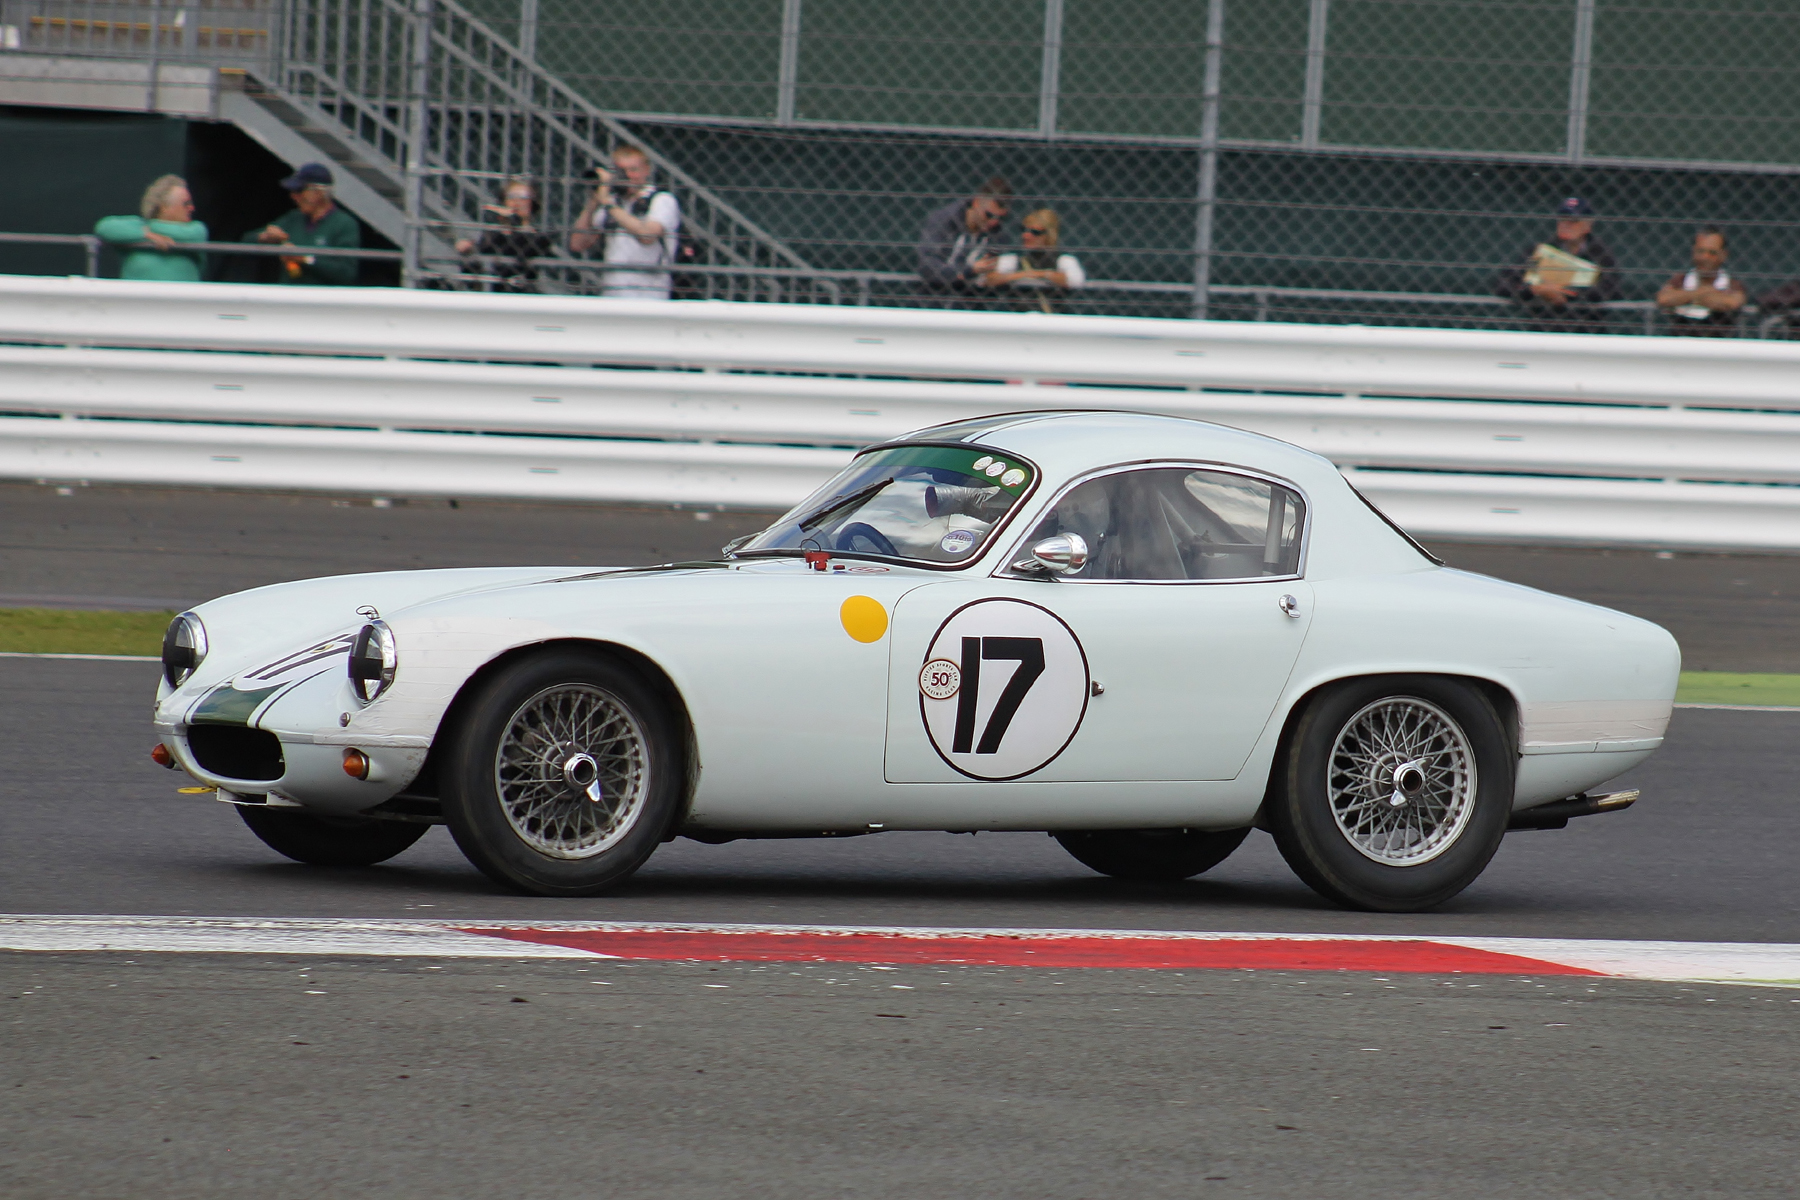 Barry Dye's Lotus Elite; such a pretty car                                                             Photo - Bob Bull, Tripos media